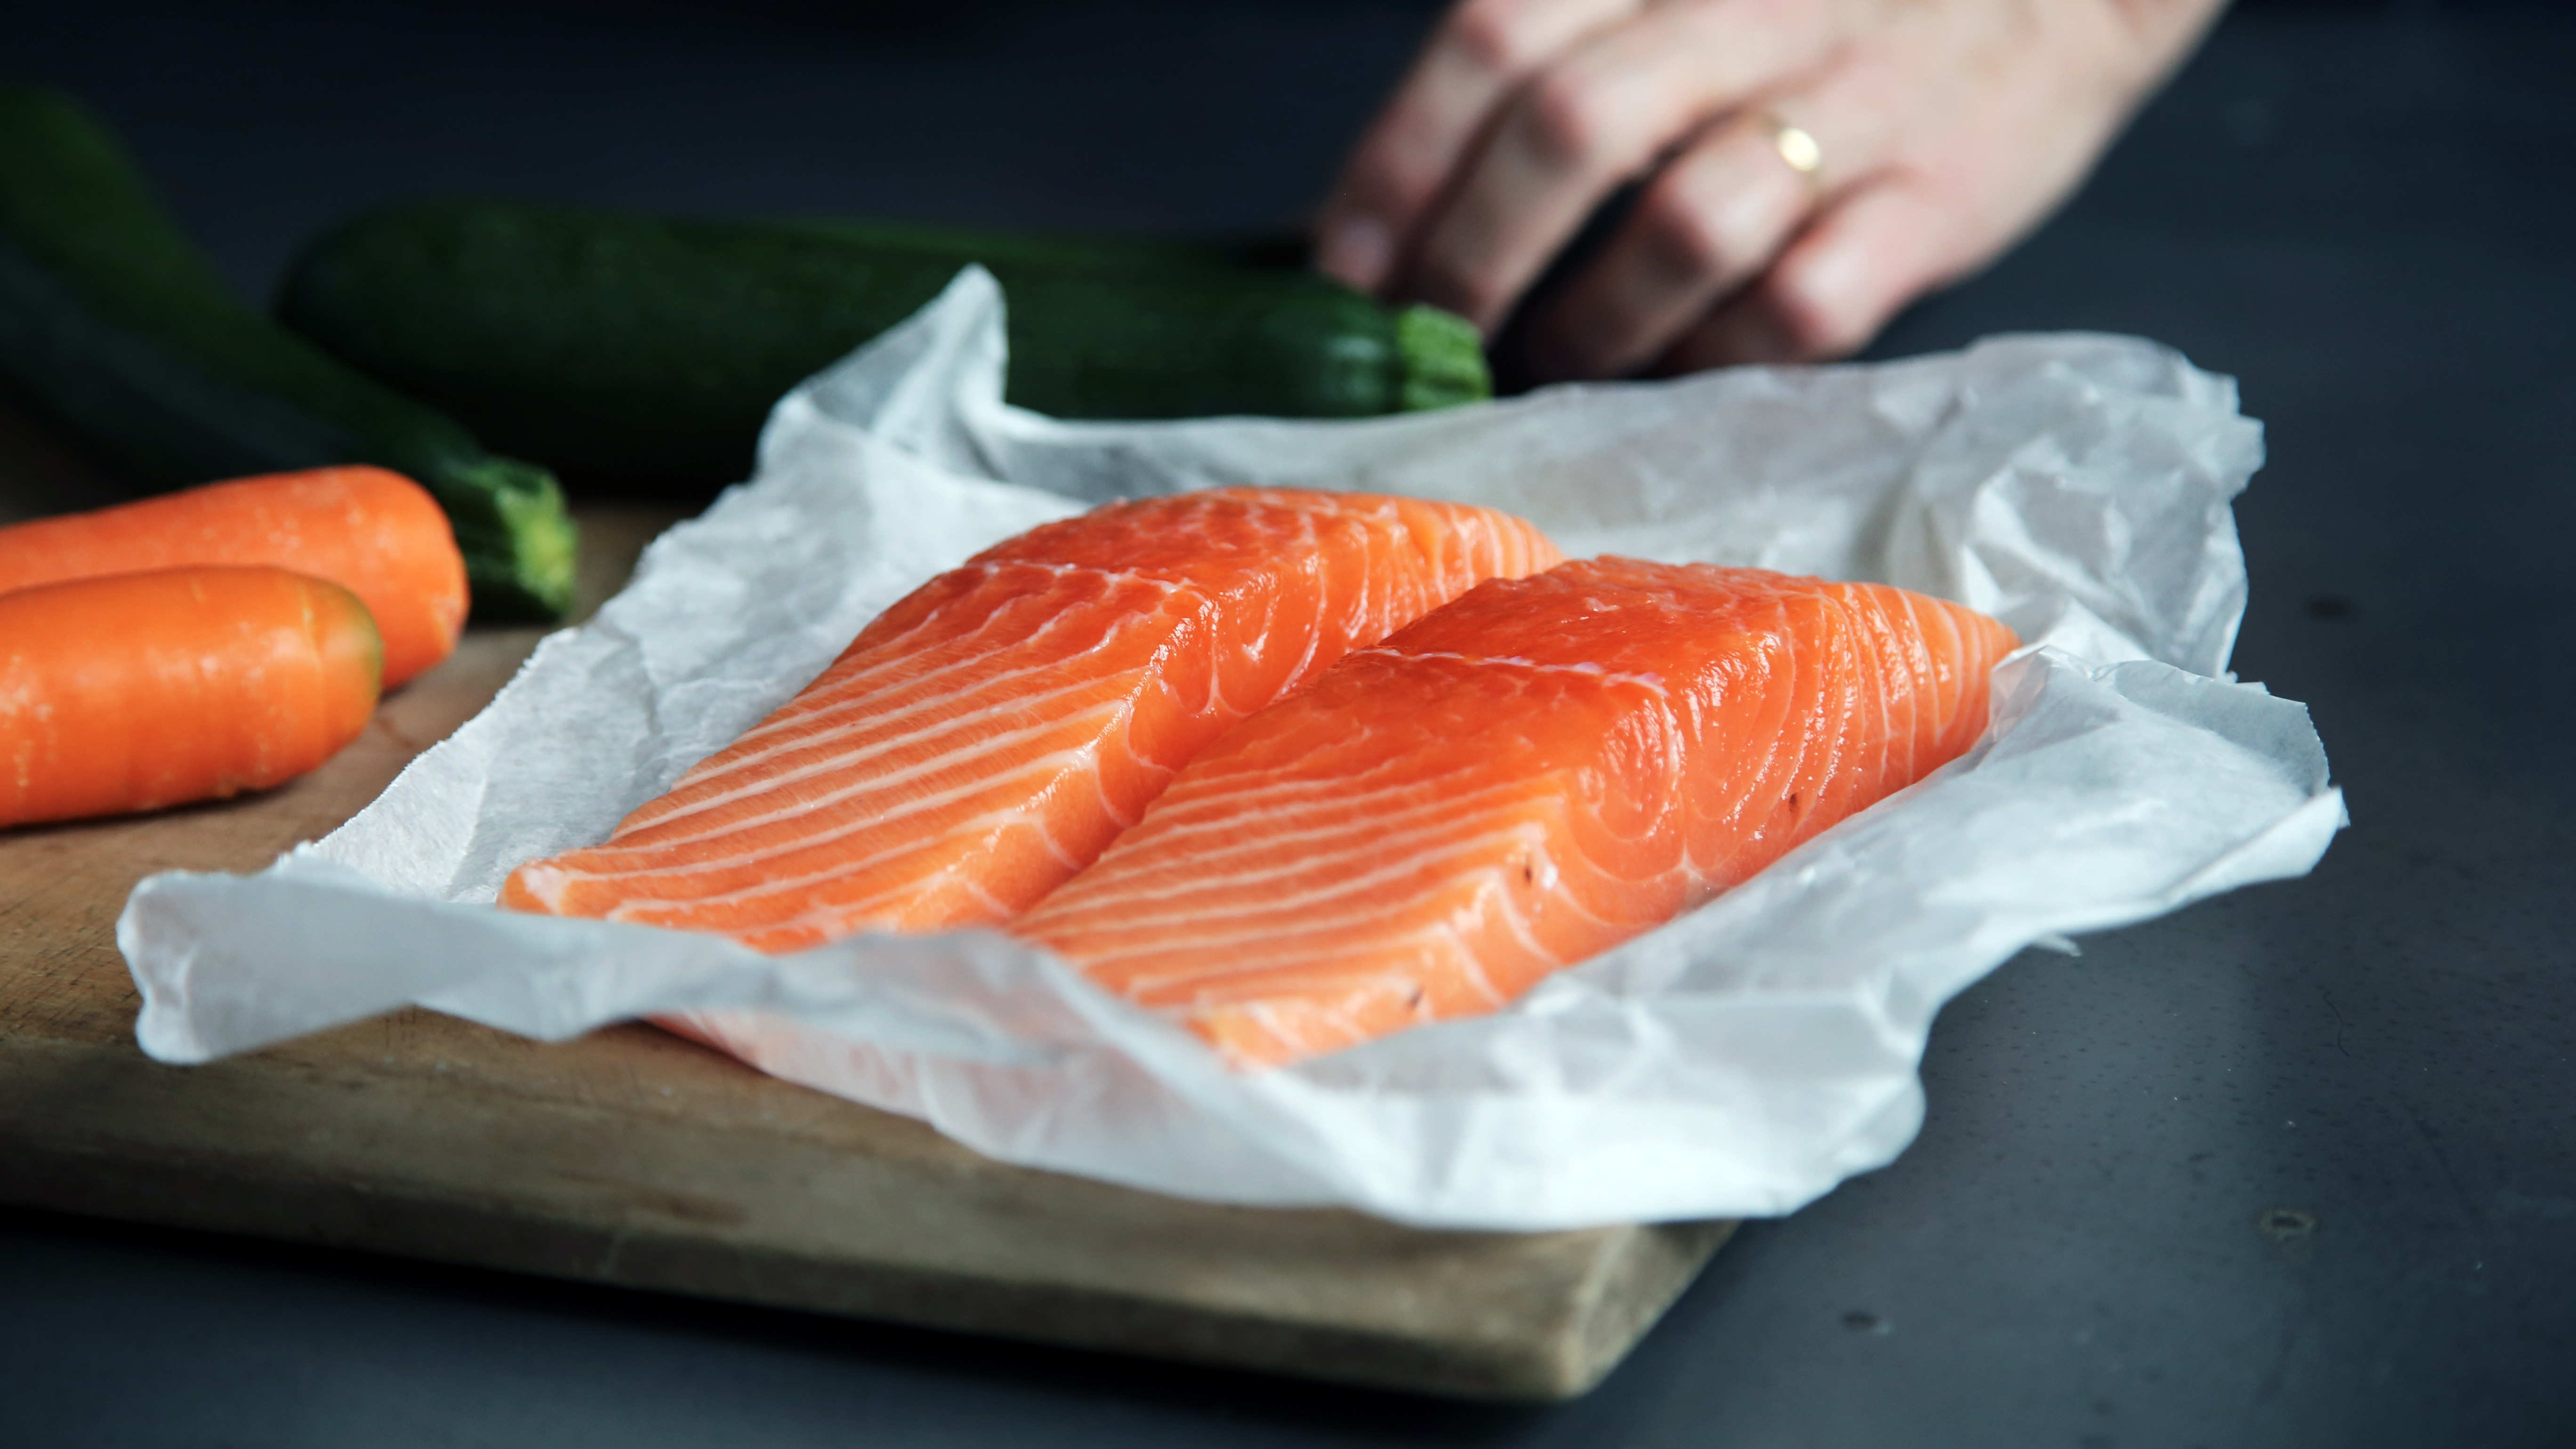 Pieces of salmon for athletes to eat before a game